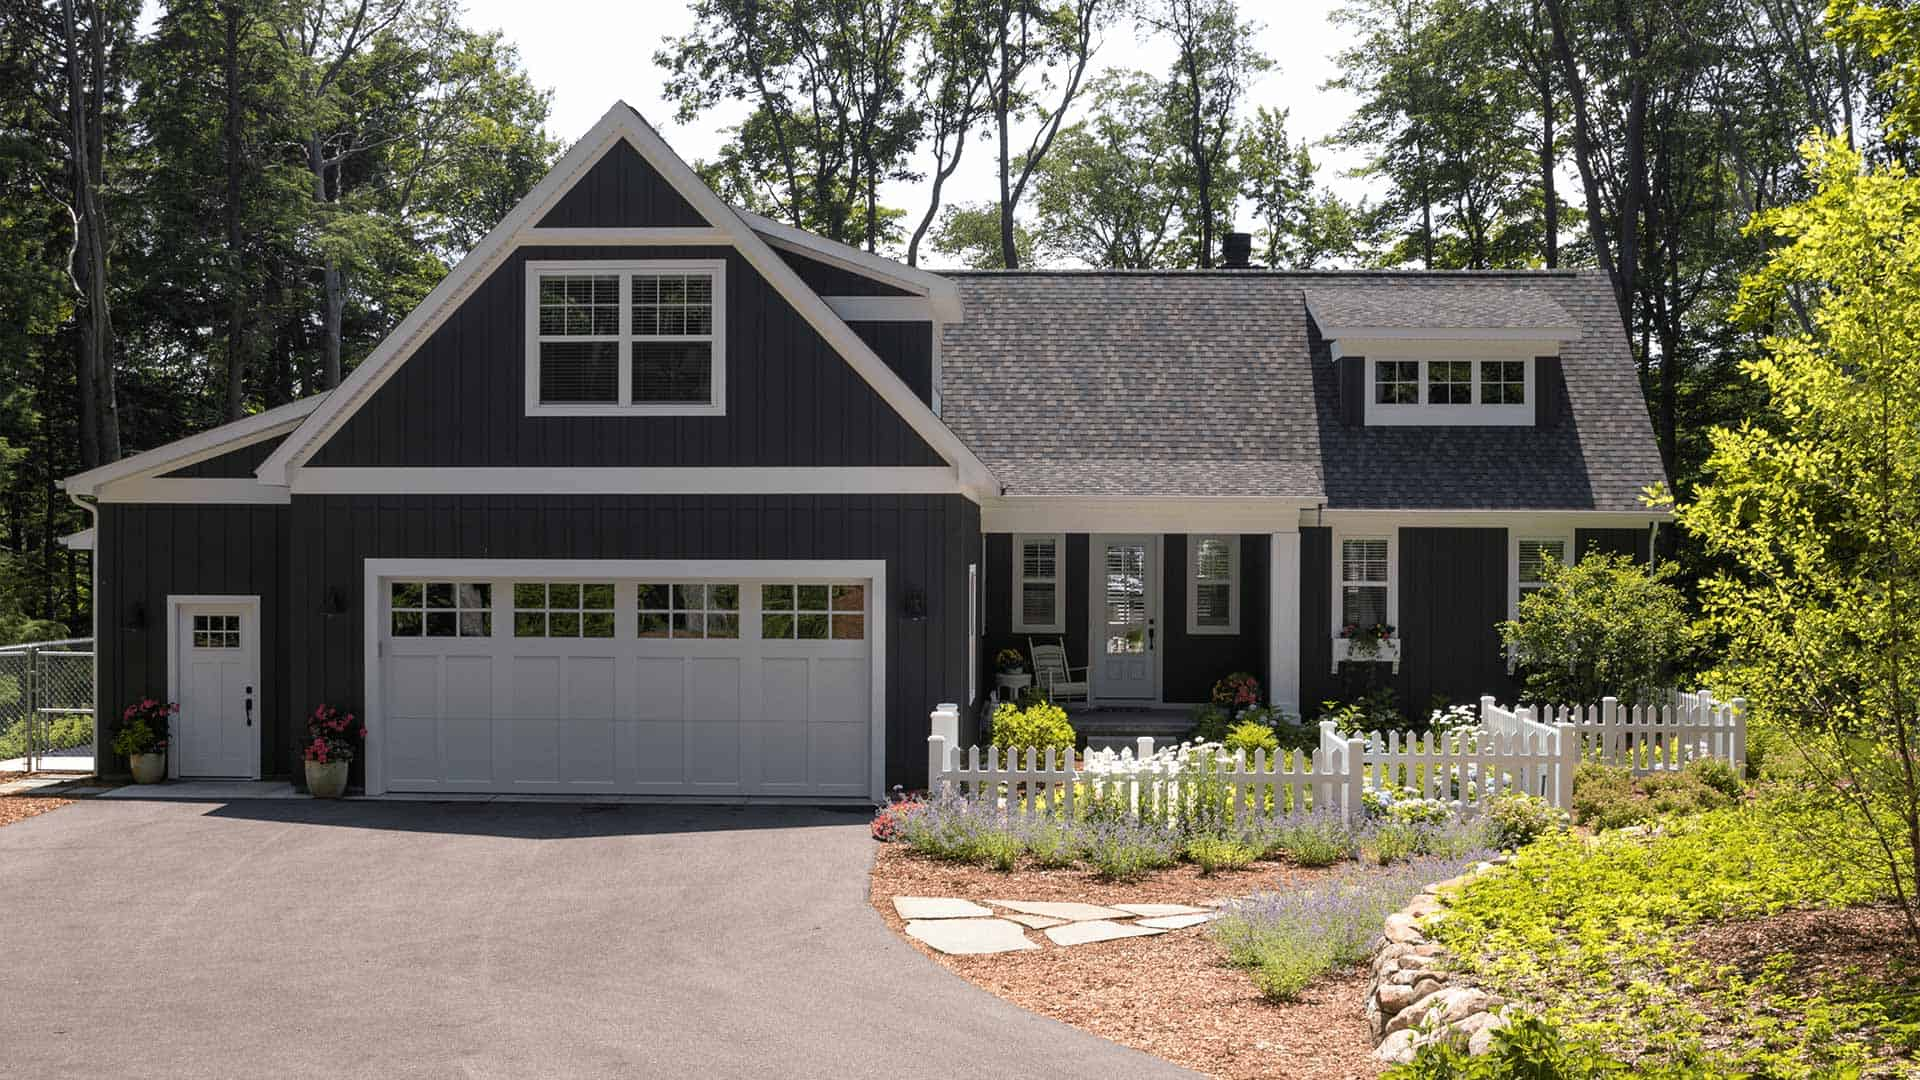 5 Ways to Go Green On Your Next Home or Remodel - featured image